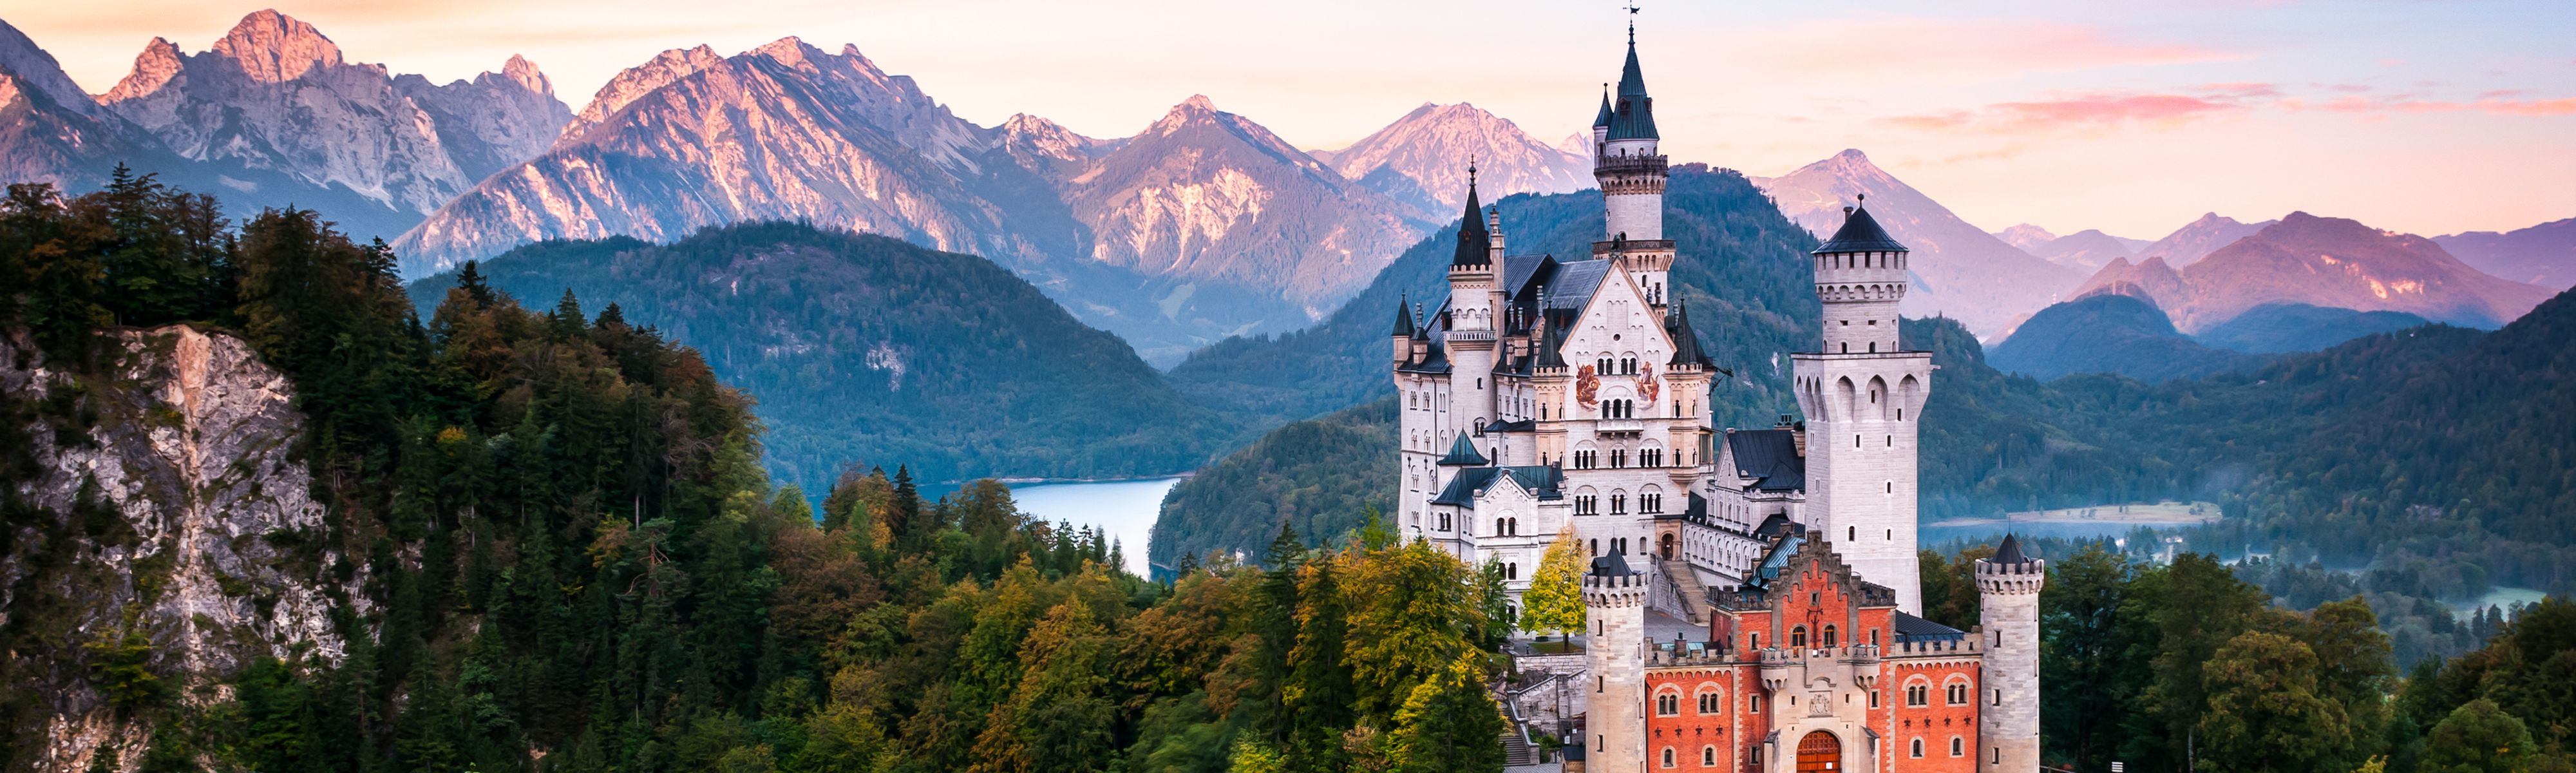 Neuschwanstein Castle at sunrise with panorama of Alps